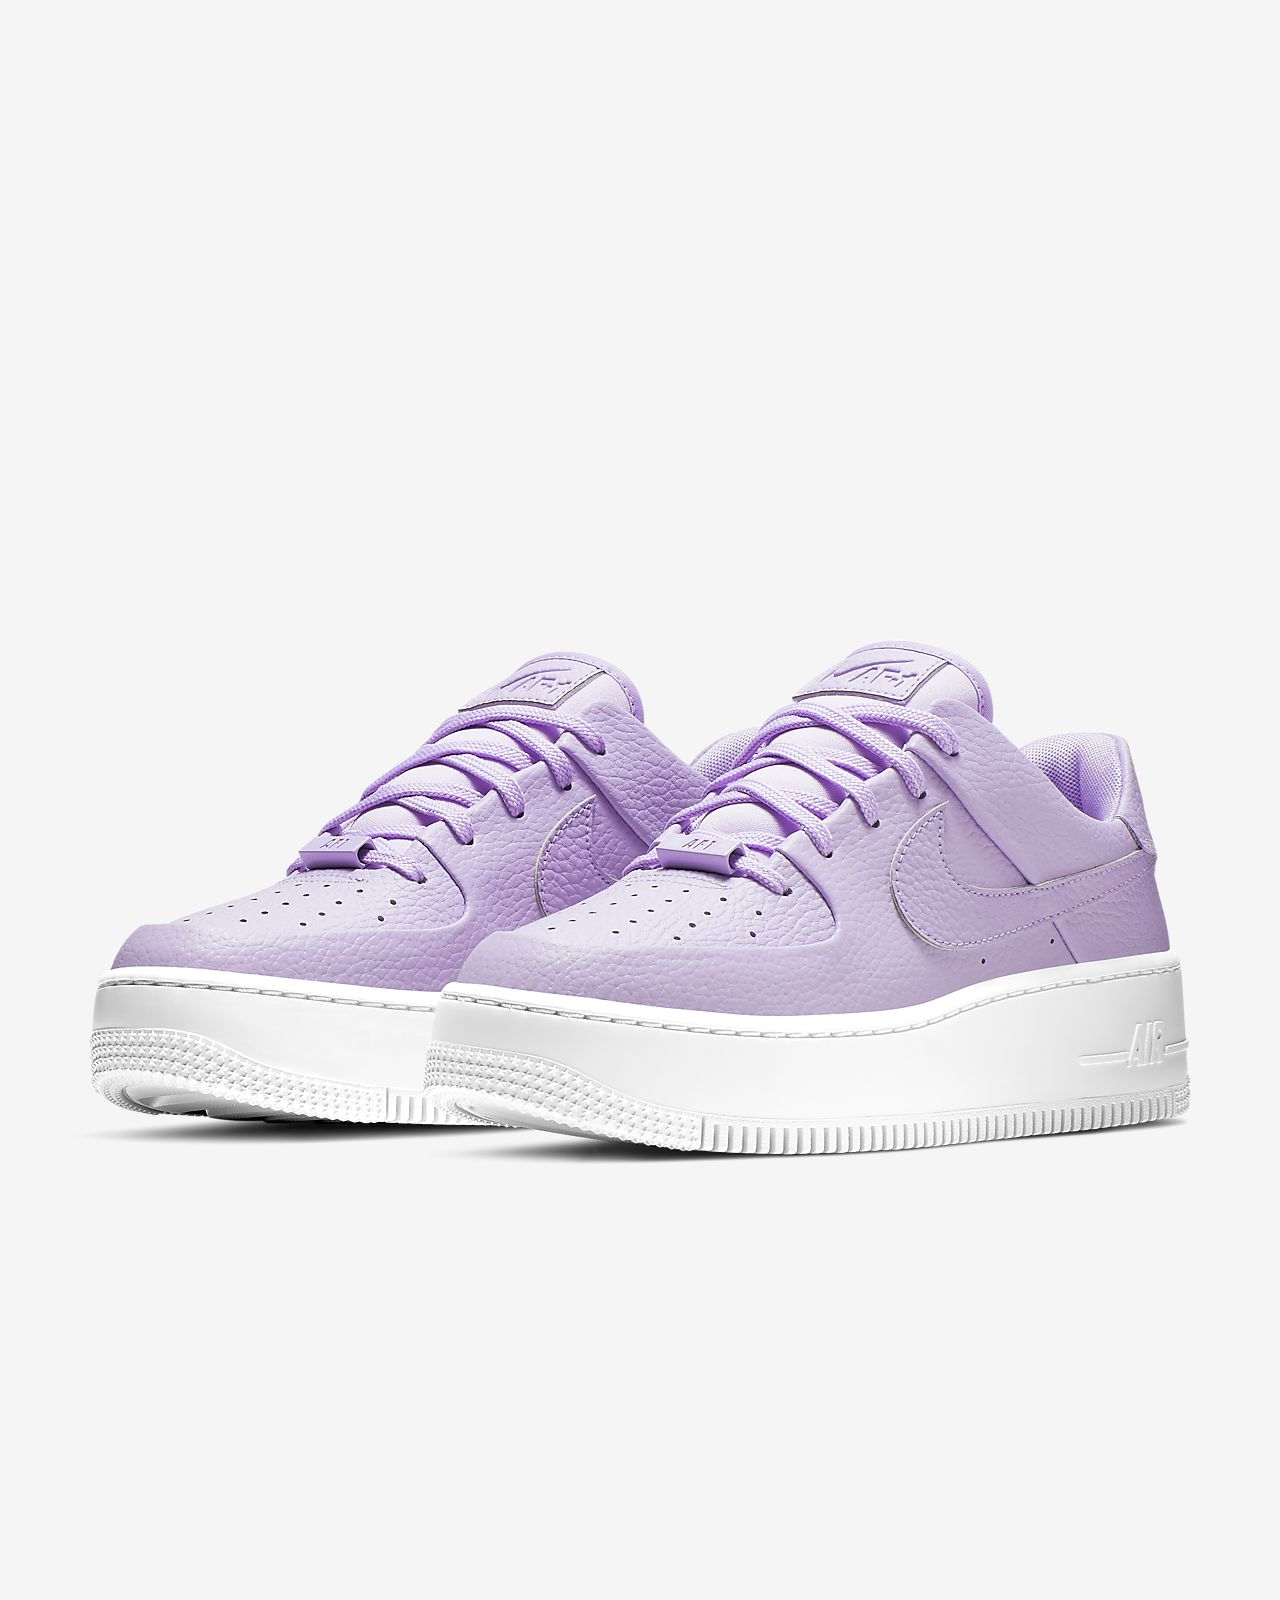 new styles 7faf8 22ed1 Chaussure Nike Air Force 1 Sage Low pour Femme. Nike.com FR